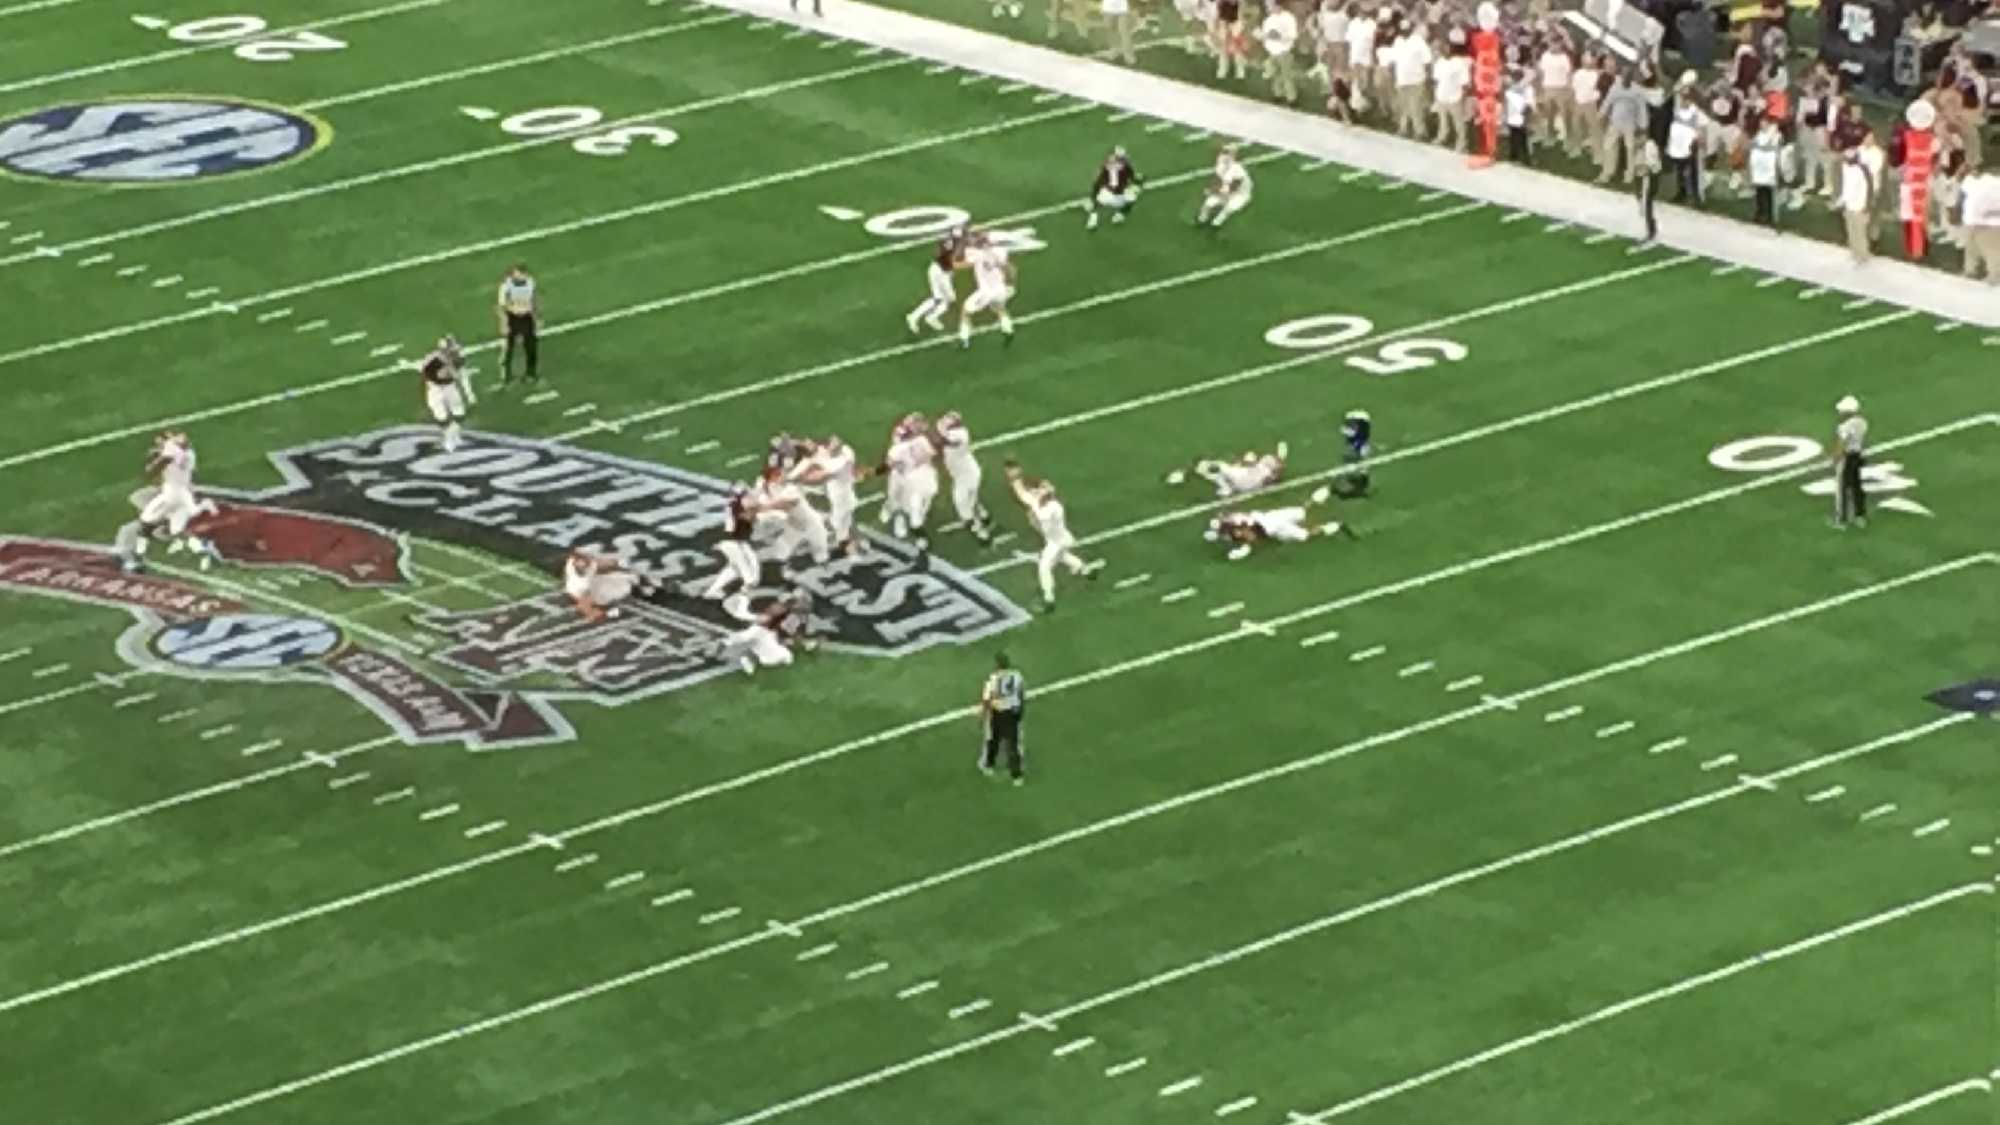 Aerial view of Razorbacks taking on the Aggies in Jerry's World